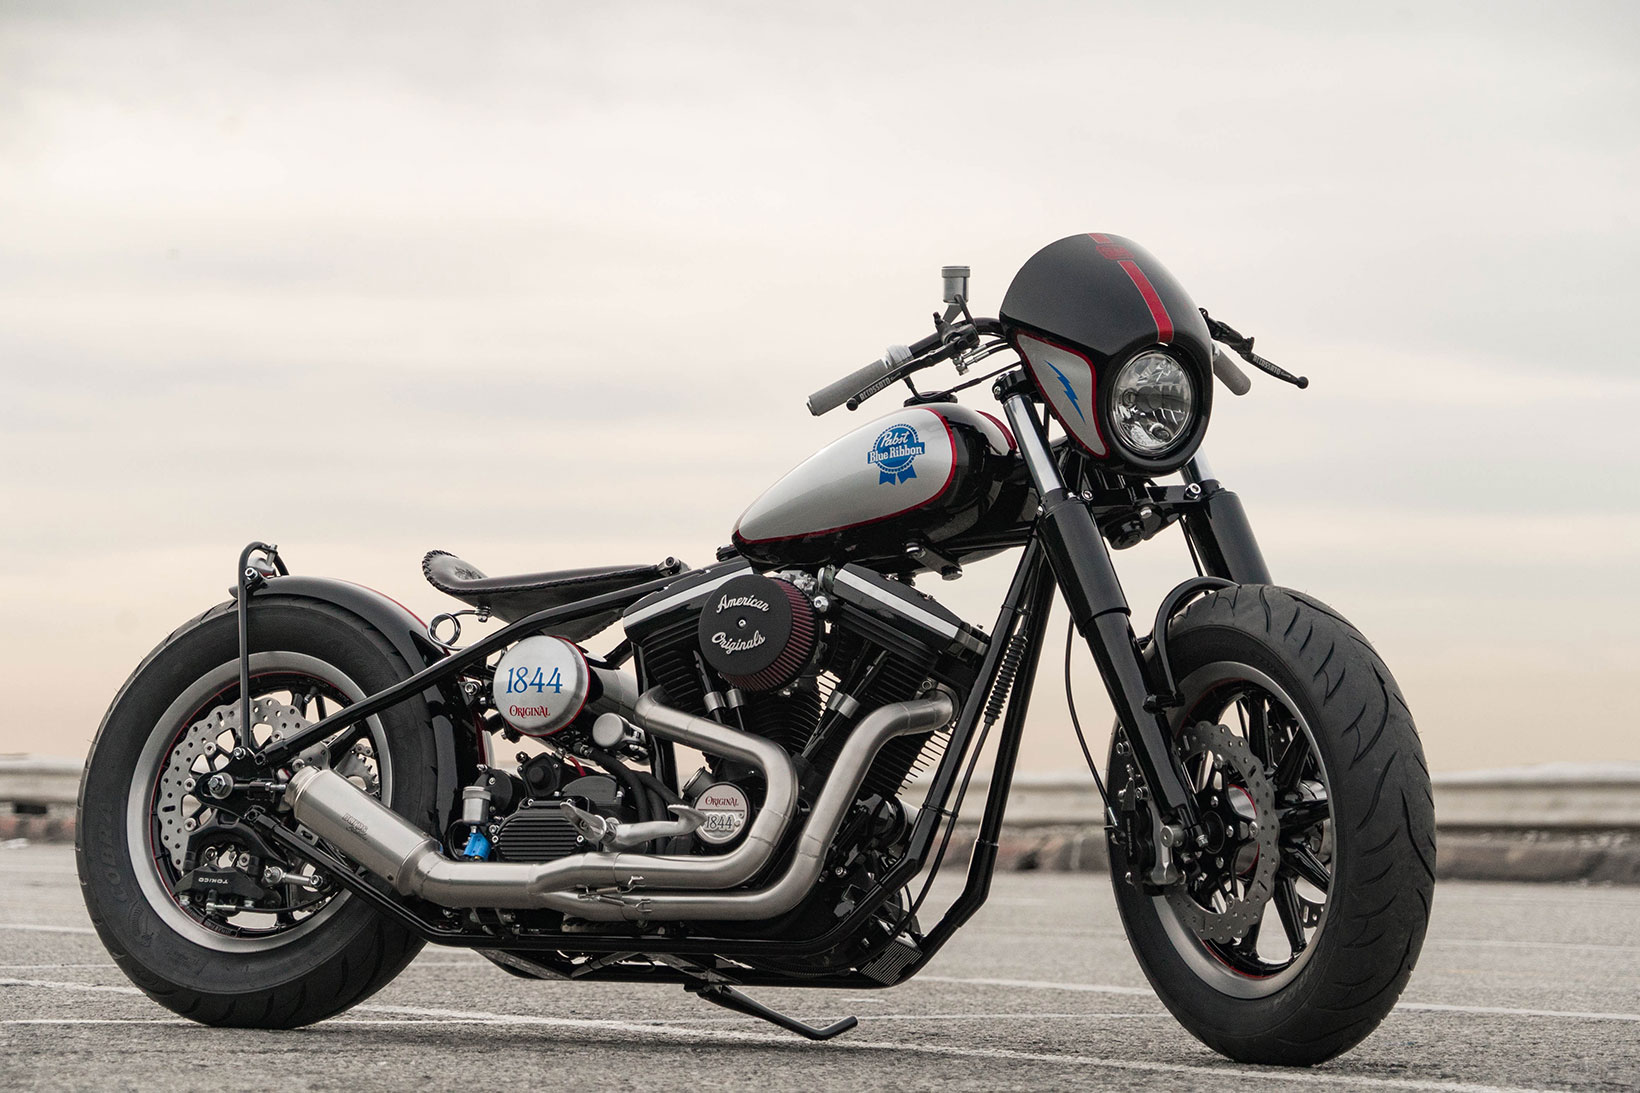 PBR x The Speed Merchant Auctions Custom Big Twin Motorcycle for Charity